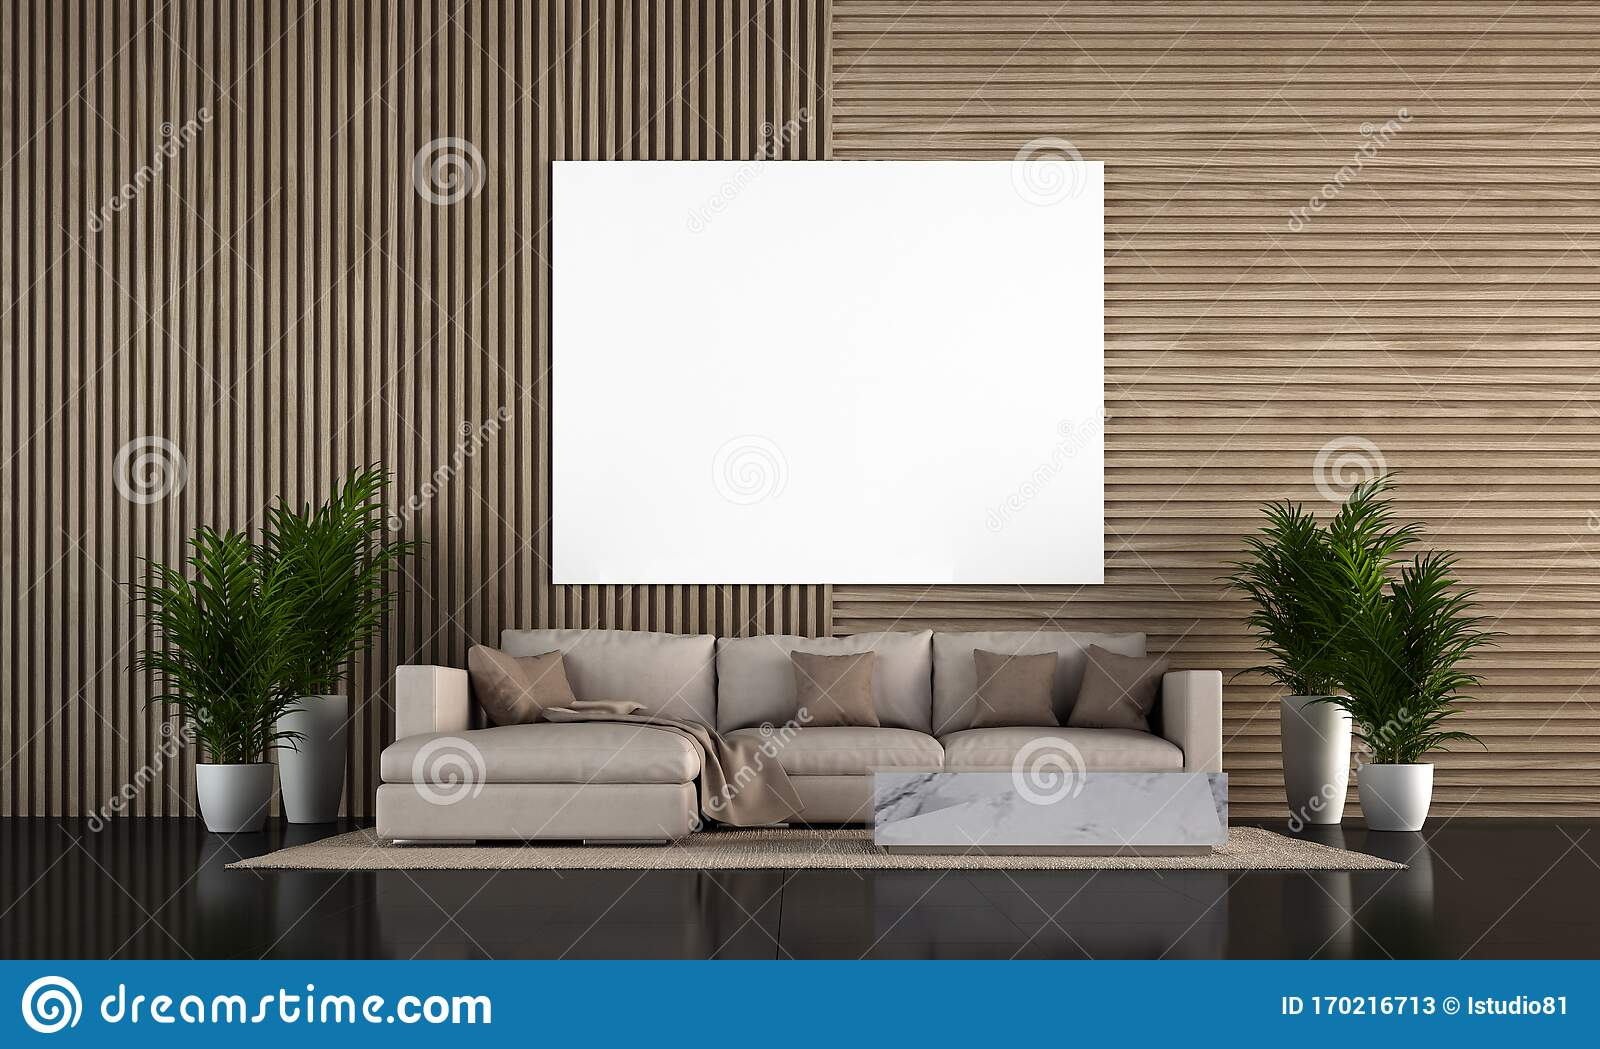 The Interior Design Of Loft Living Room And Wooden Tile Texture Wall Background Stock Illustration Illustration Of Idea Apartmnet 170216713